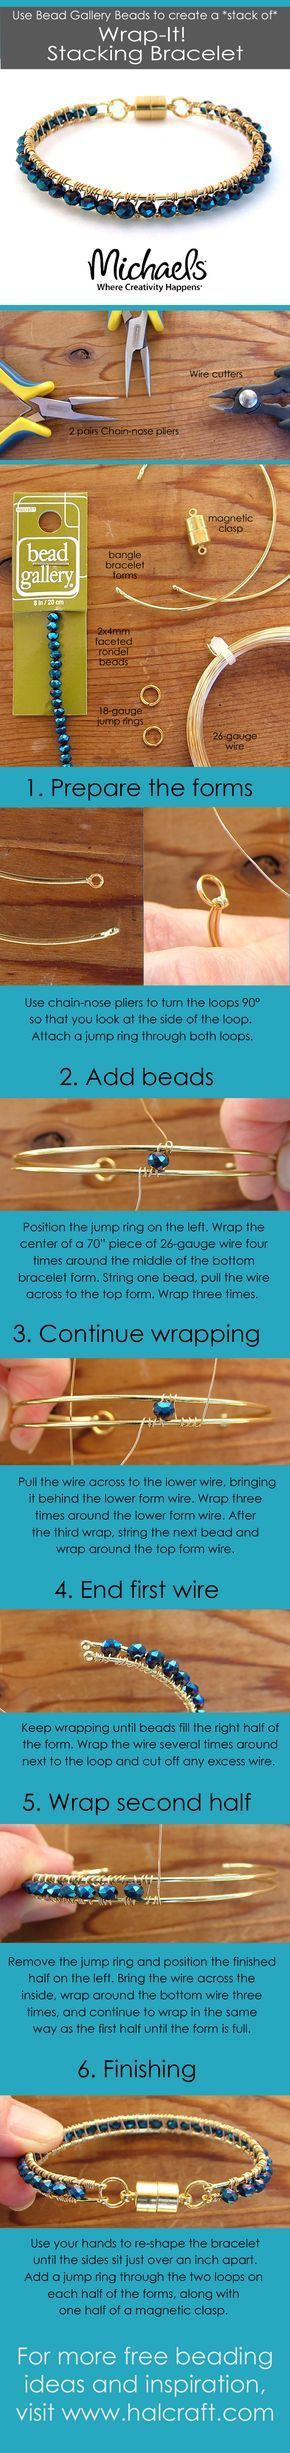 Tutorial DIY Wire Jewelry Image Description Step-by-step photos by Barb Switzer show you how to make a wire wrapped bracelet with Bead Gallery beads for a sparkling beauty you'll love to stack!